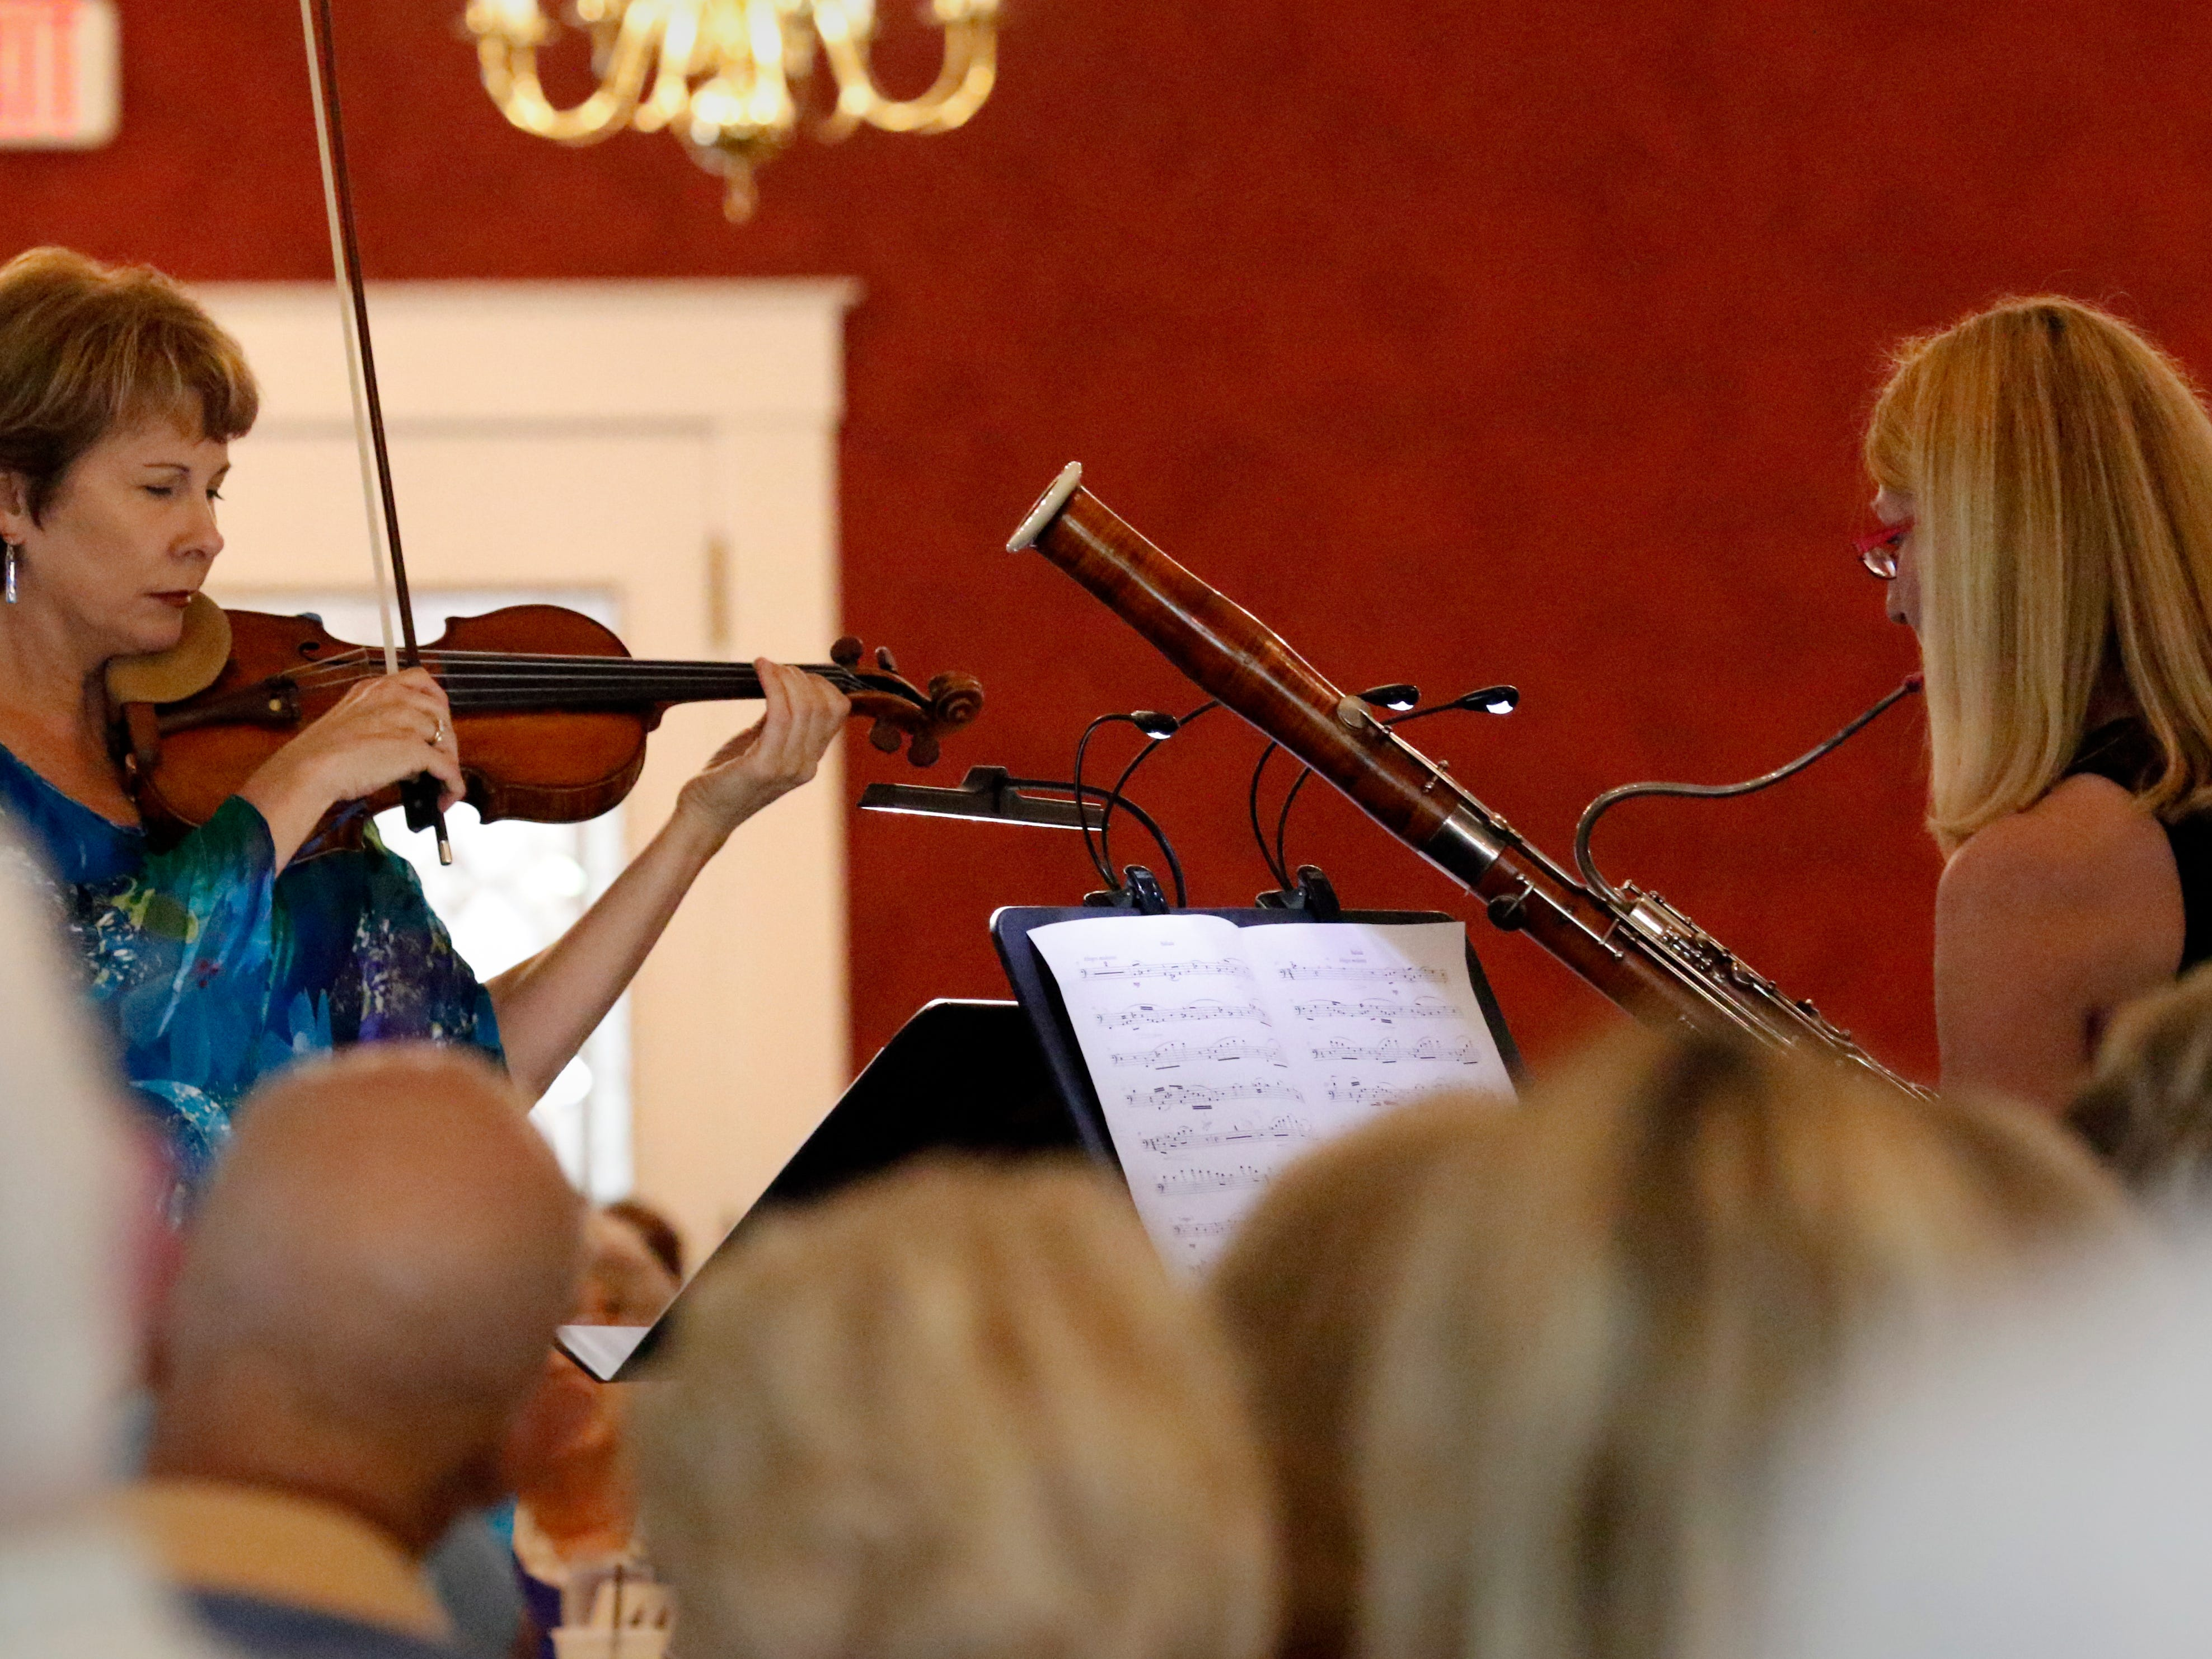 Stephanie Sant'Ambrogio, left, and Linda Fisher perform Friday afternoon, July 27, 2018, during a Lancaster Festival Cafe Concert at the Lancaster Country Club in Hocking Township. The concert featured principal members from different sections of the Lancaster Festival Orchestra.